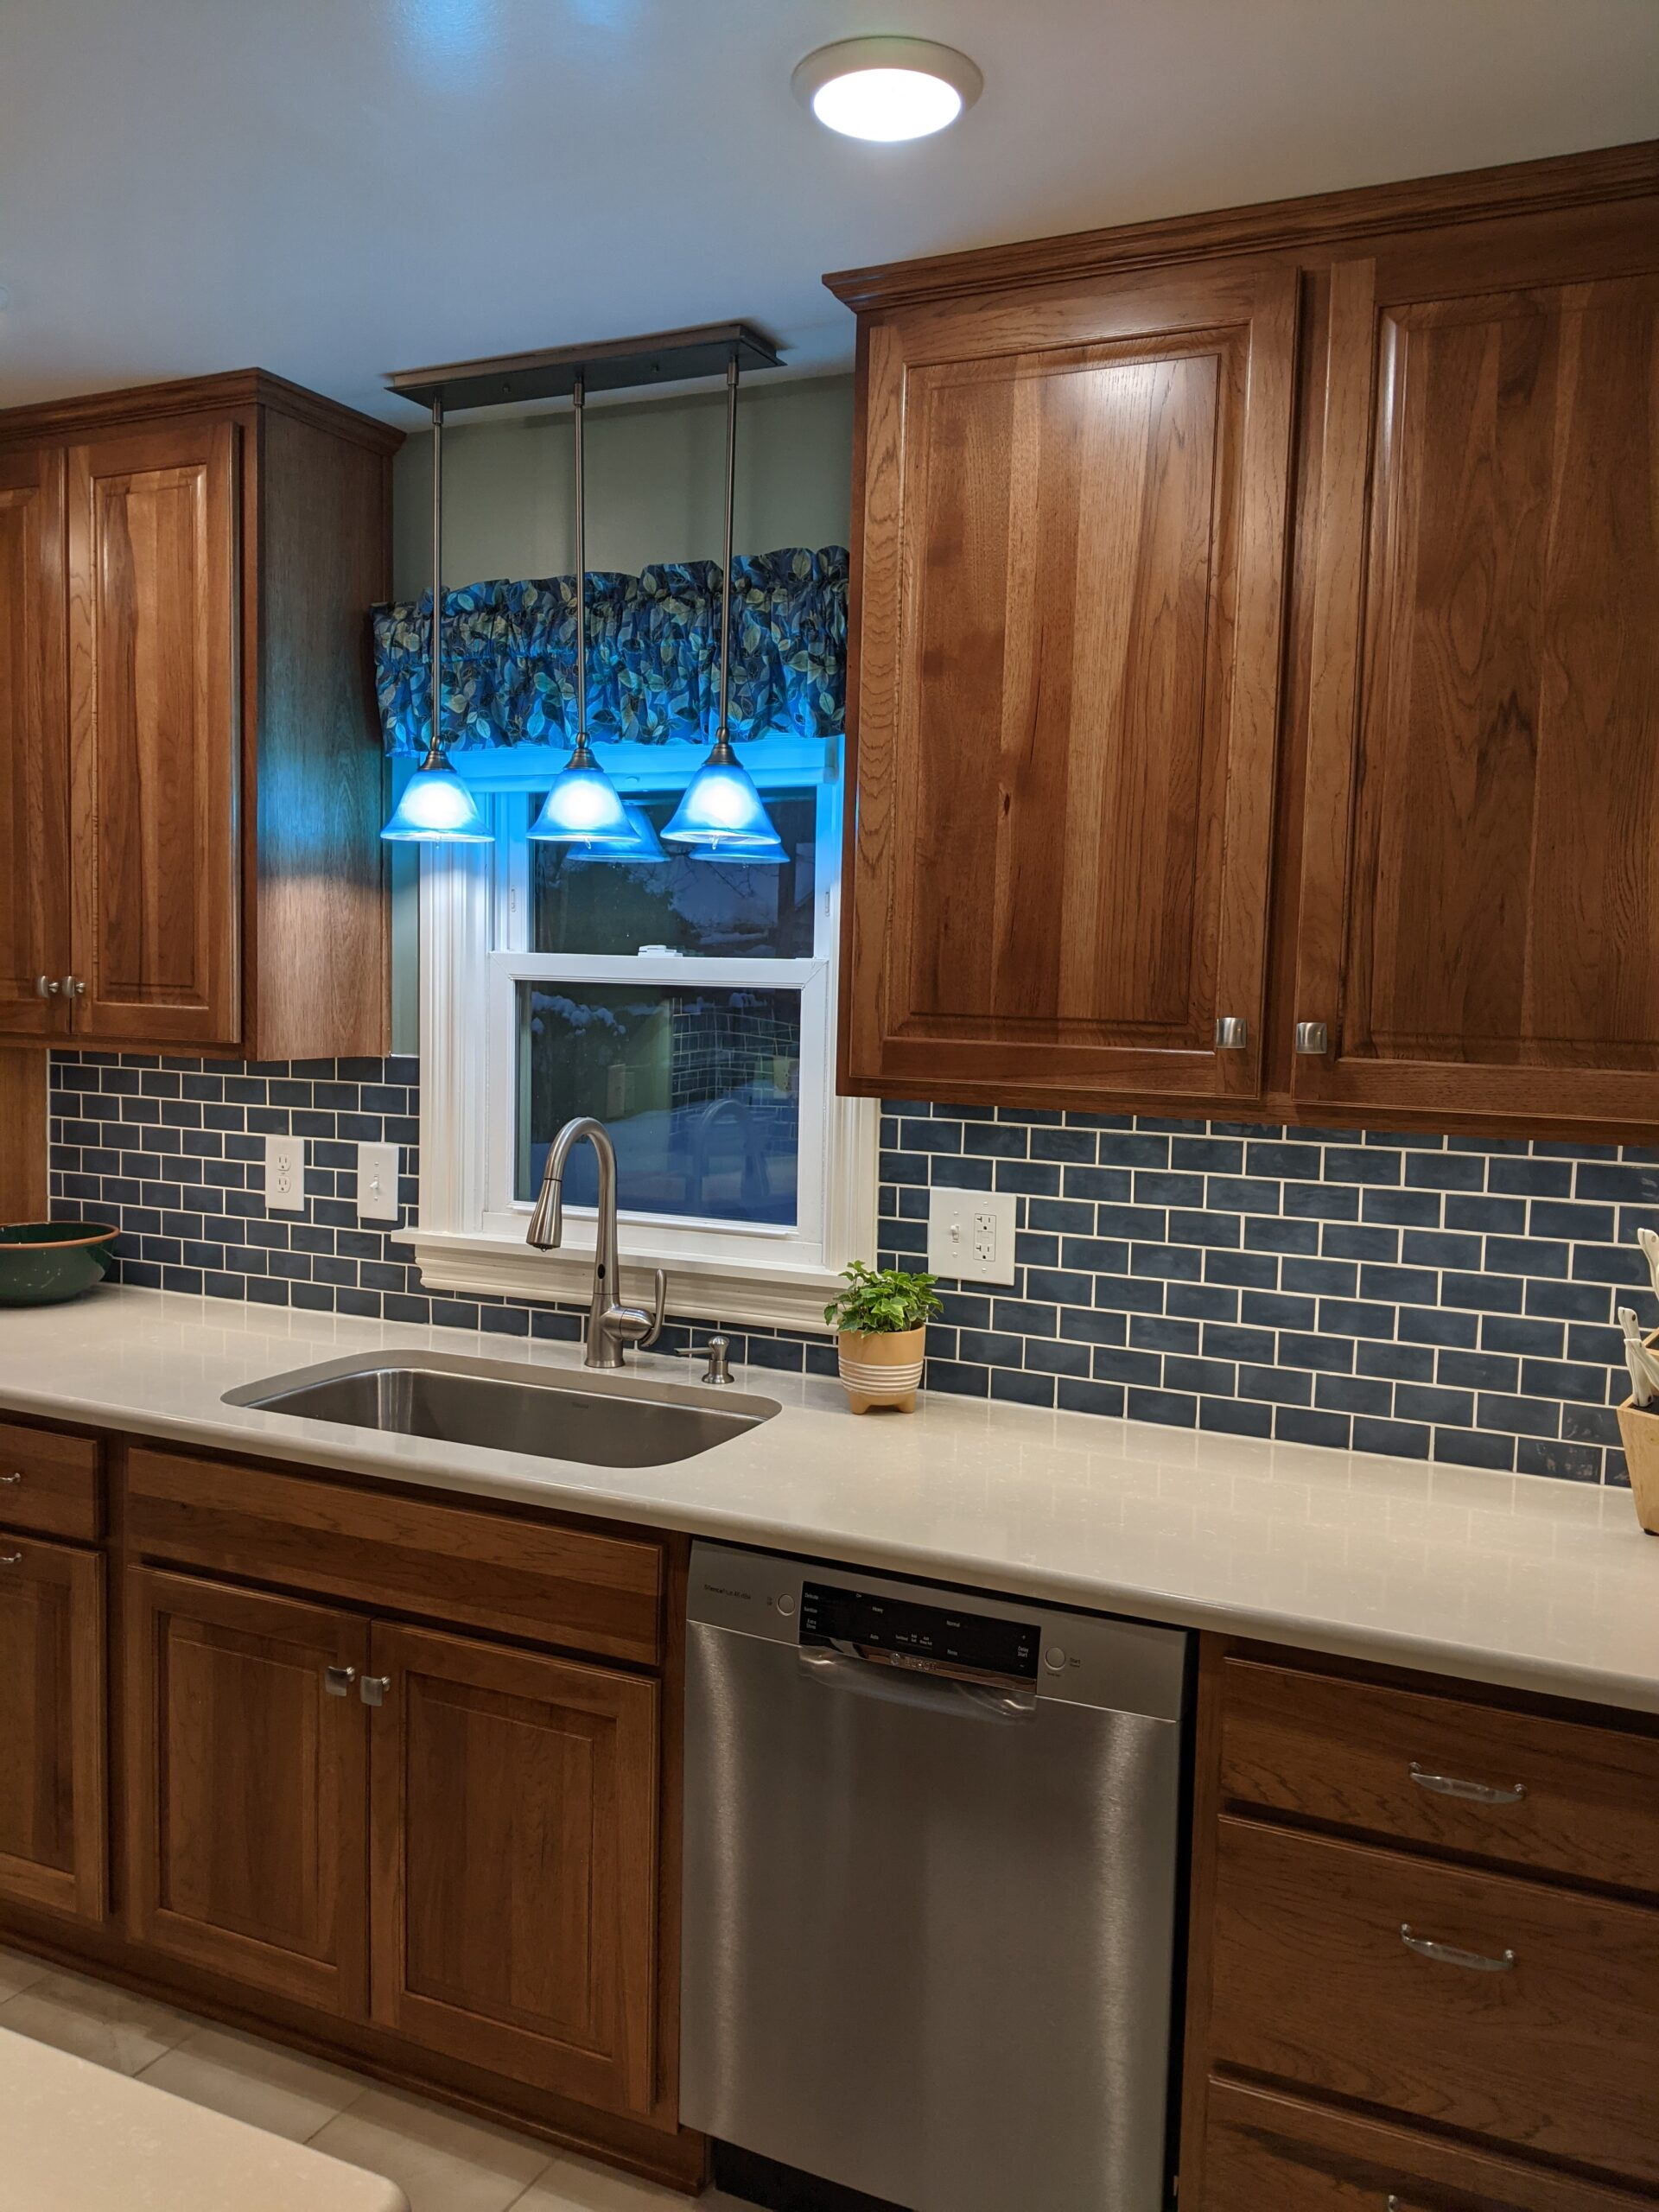 Another view of the sink area showcasing the tile